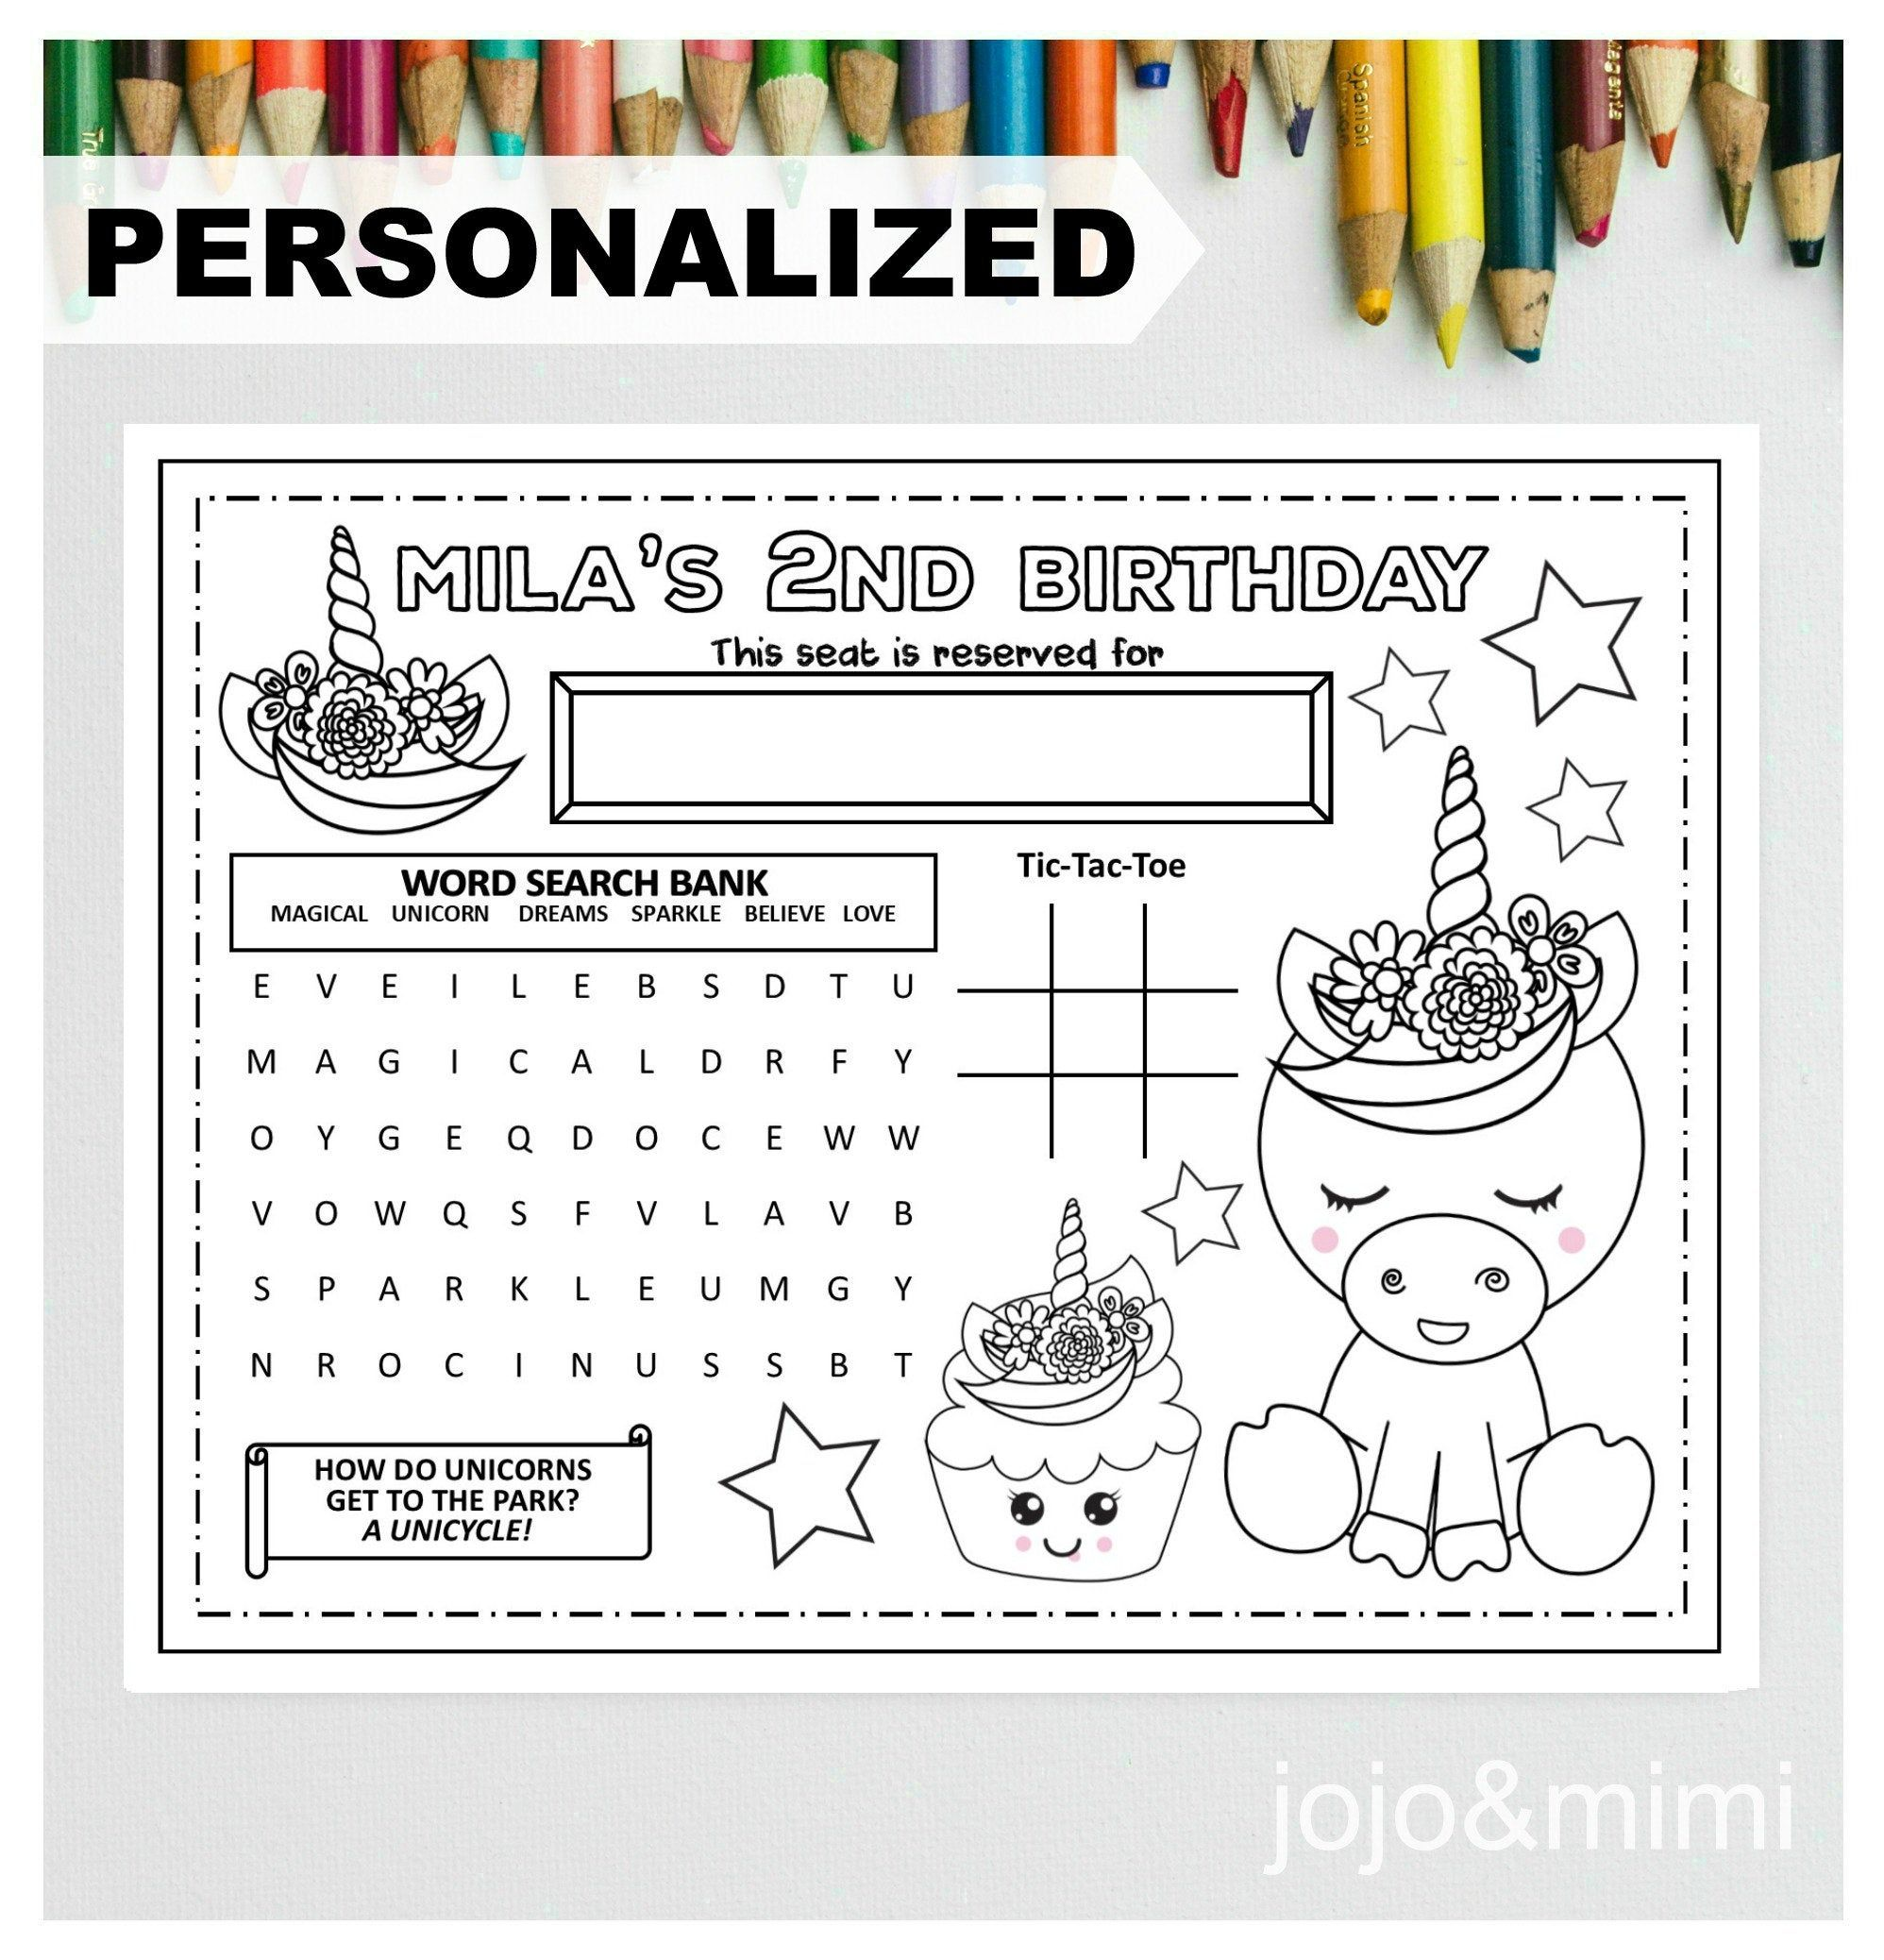 PERSONALIZED UNICORN Happy Birthday Printable Placemat ...